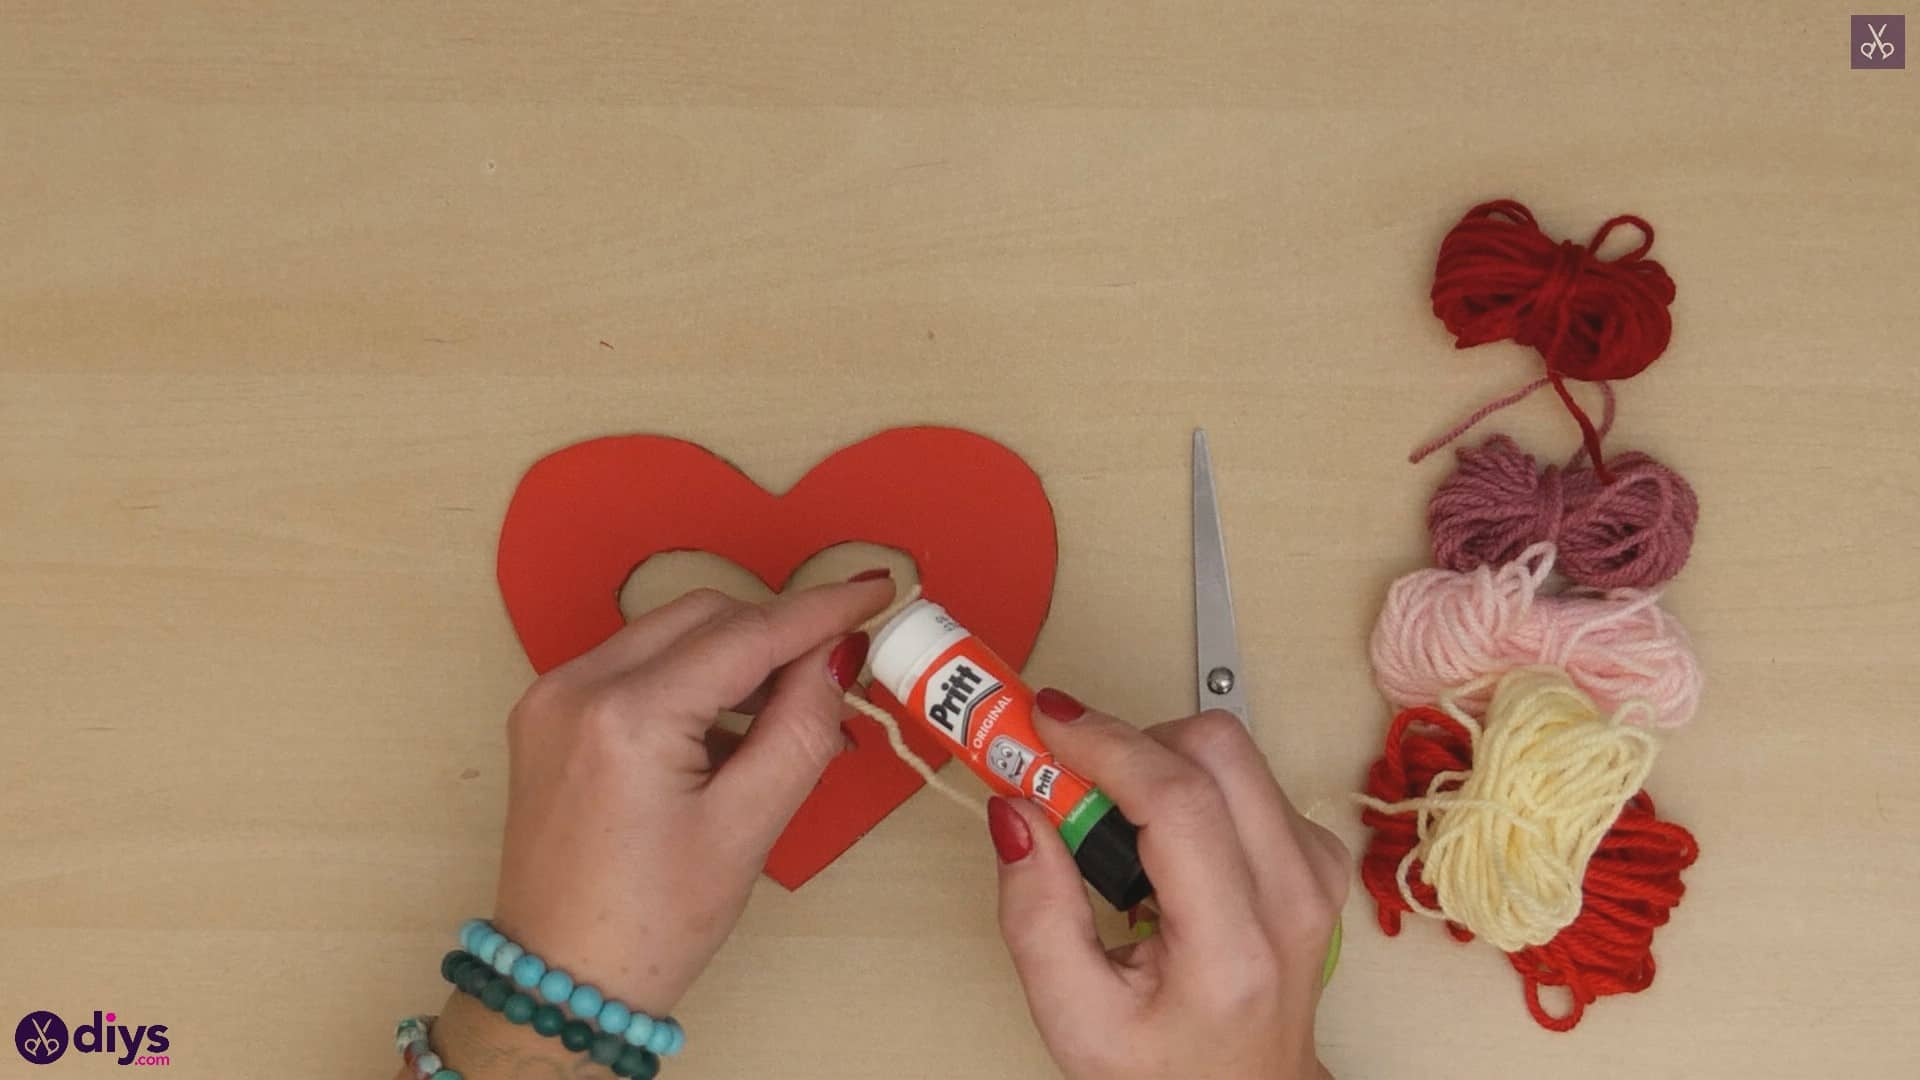 Diy yarn wrapped paper heart step 5